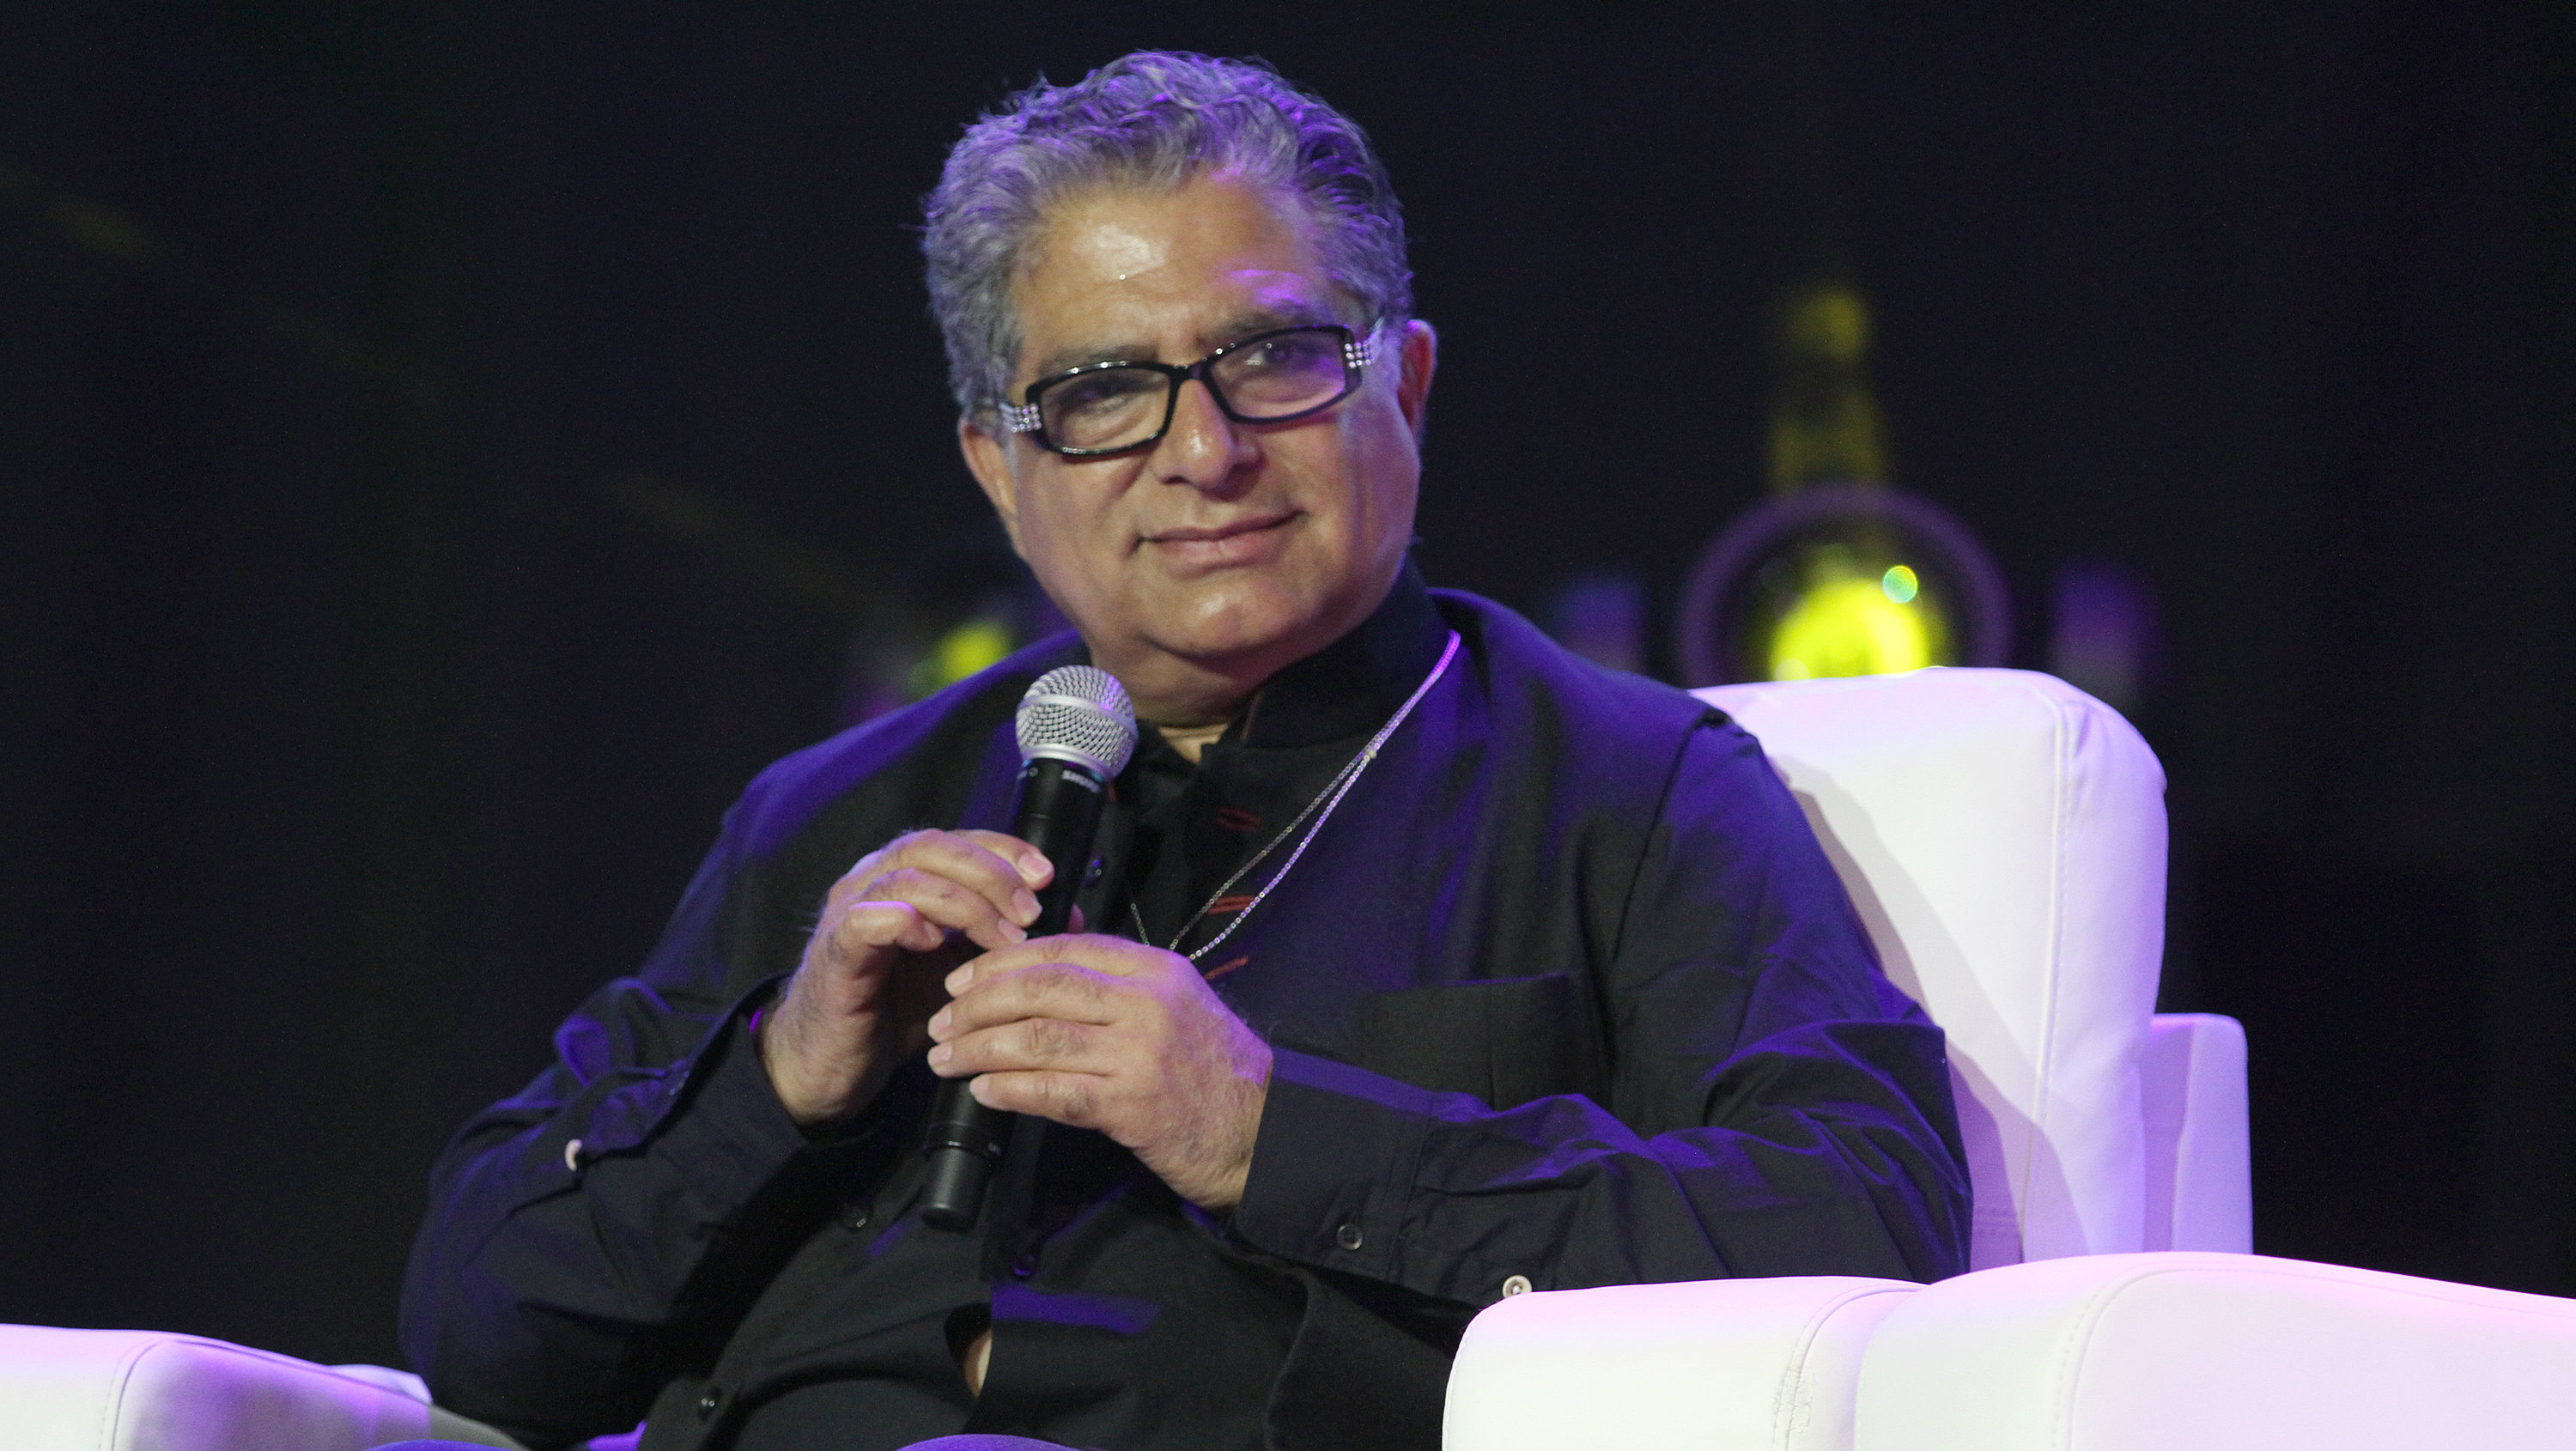 Guru Deepak Chopra on stage